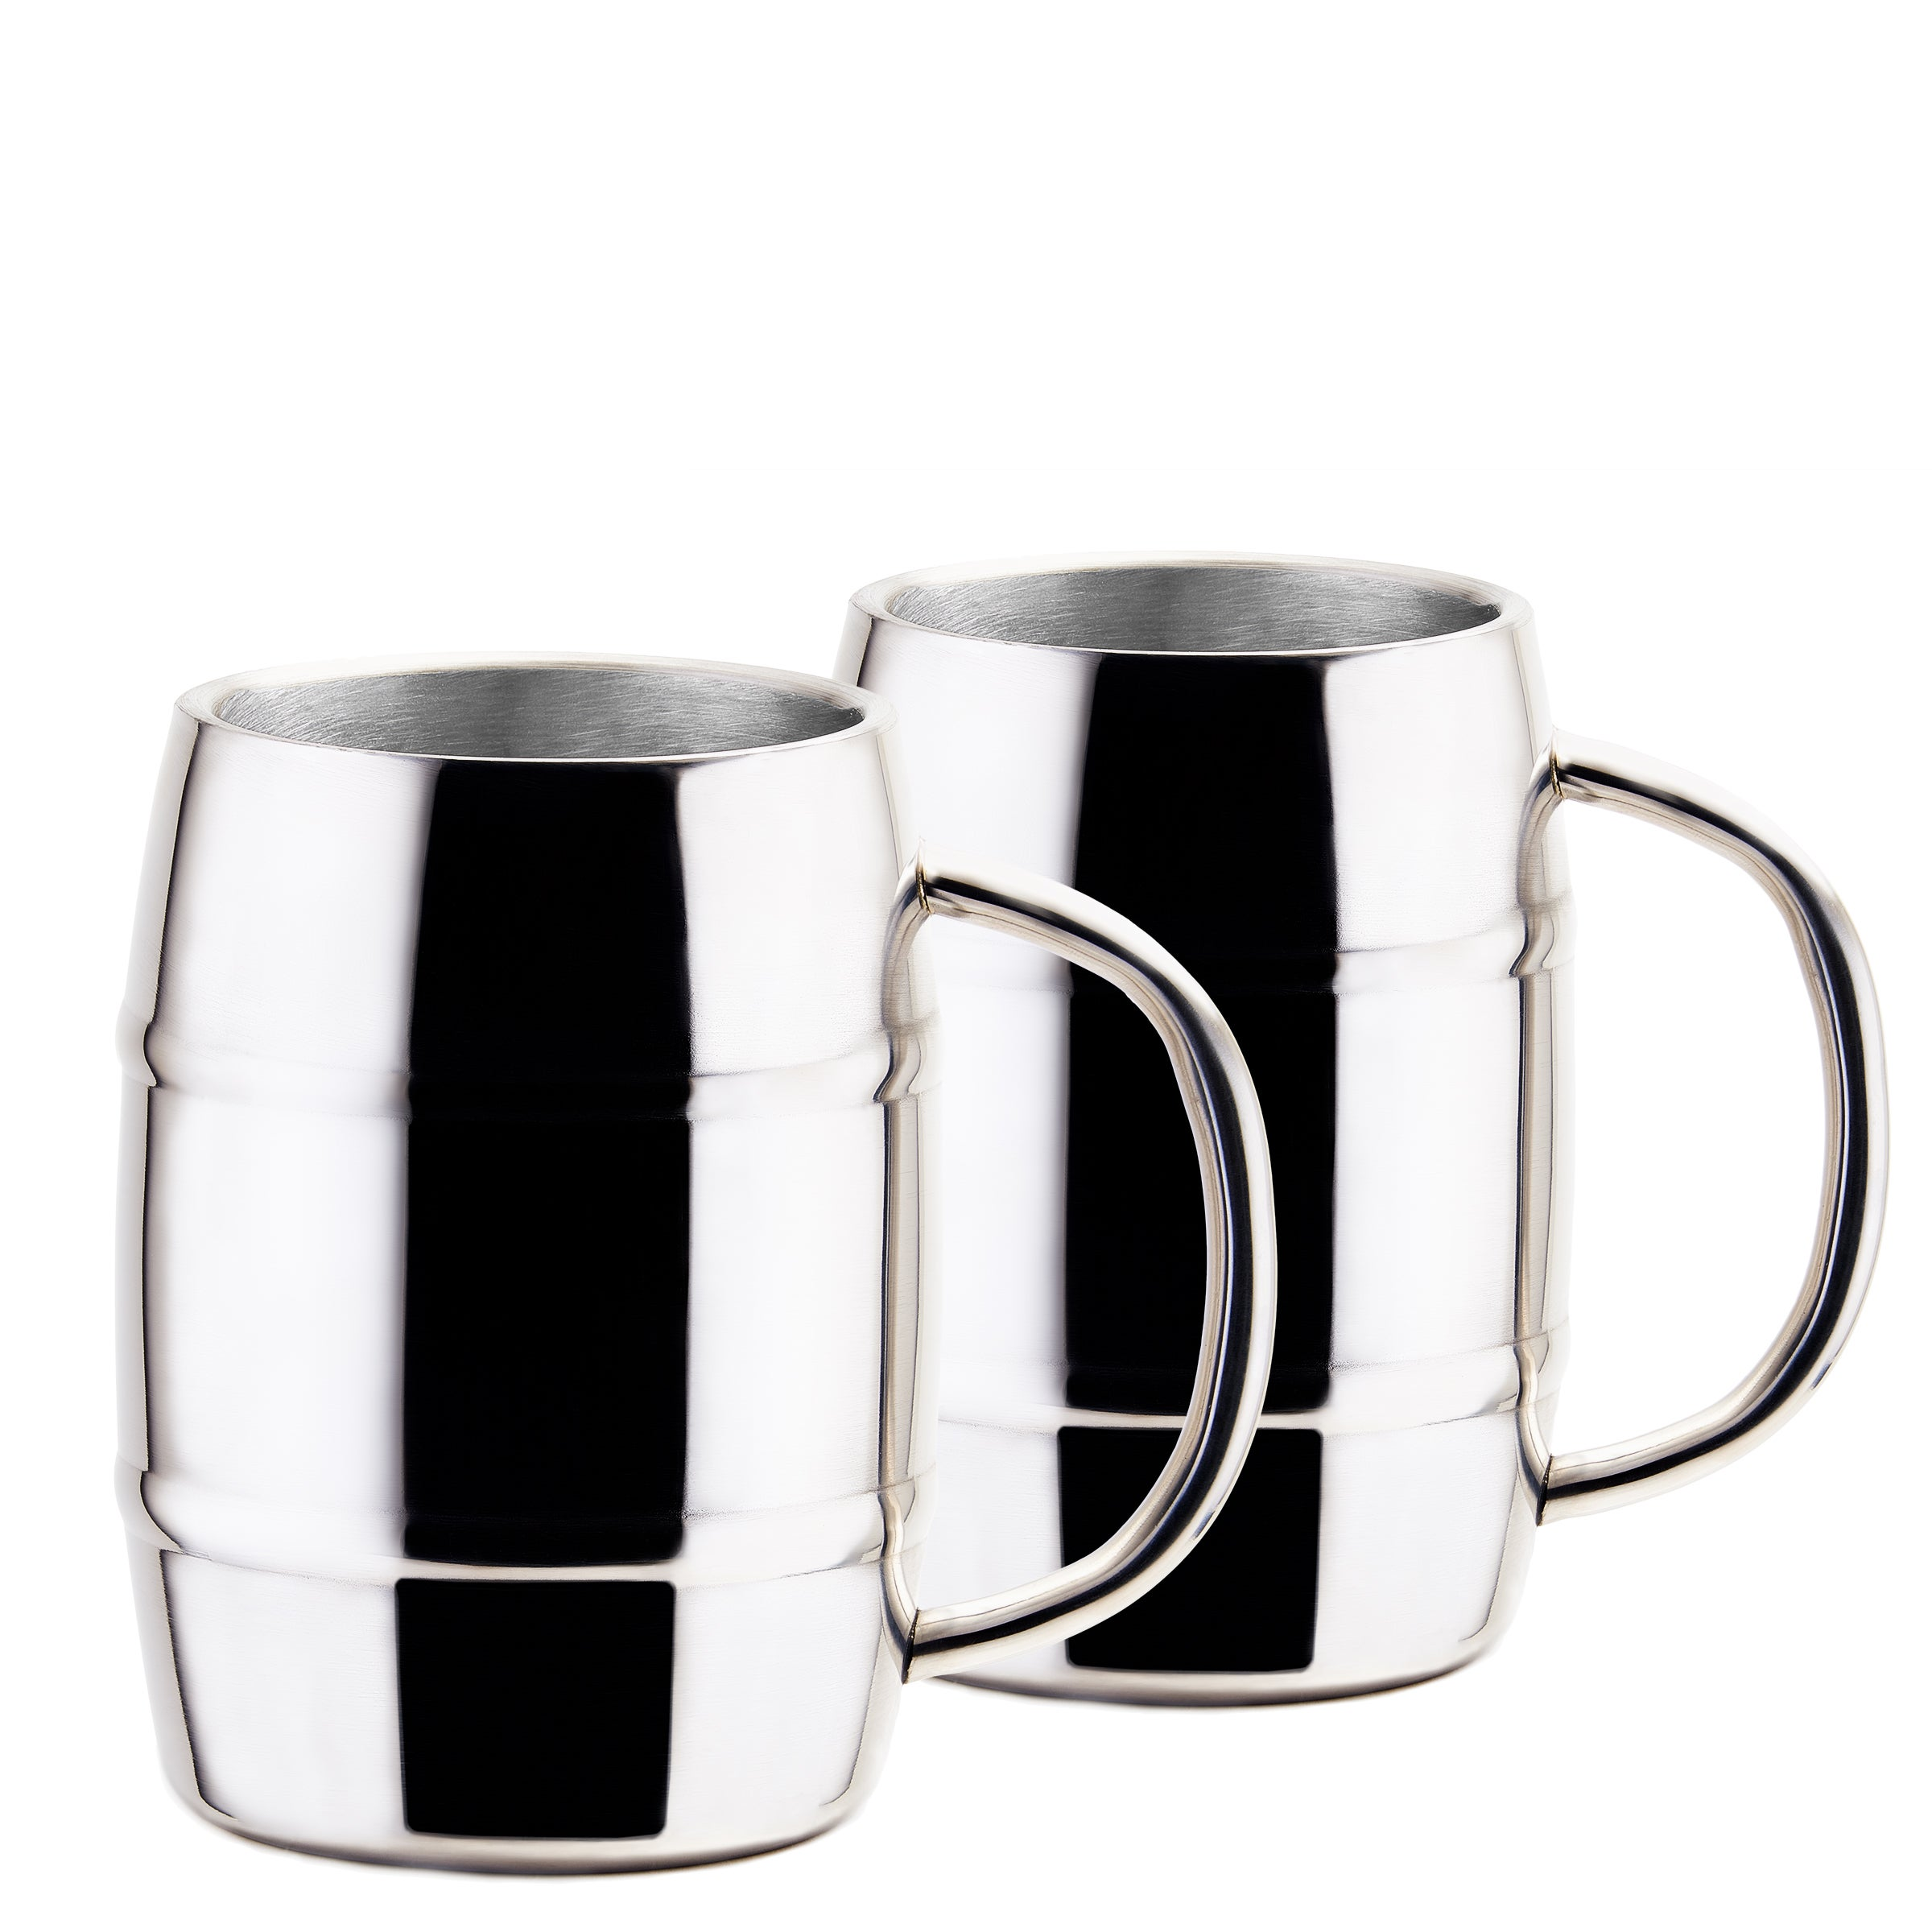 79a008ad33b Shop Jumbo KeepKool® 33.8 Oz. Double Walled Stainless Steel Mugs, Set of 2  - Free Shipping On Orders Over $45 - Overstock - 15390752